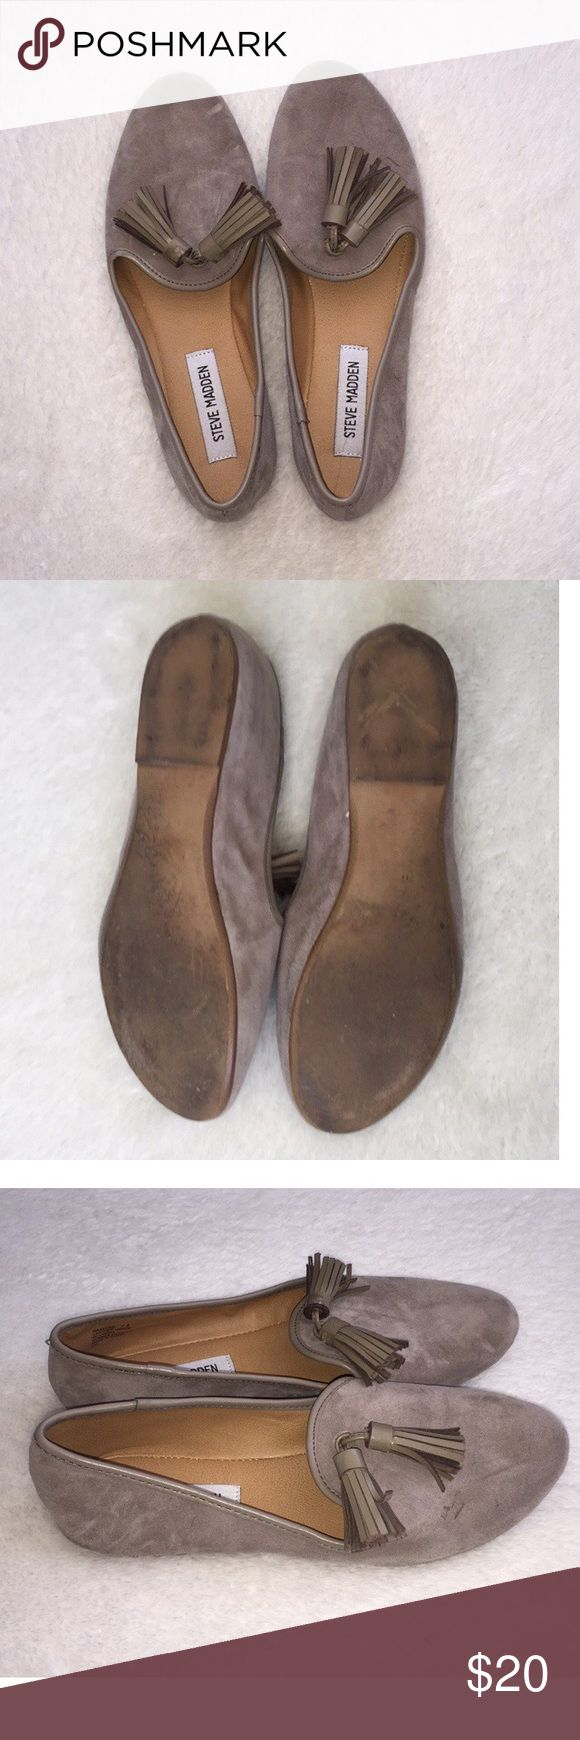 🆕 Steve Madden Flats with tassel Steve Madden Flats with tassel- Color Gray, used a couple of times, in excellent condition. Fits true to size. Steve Madden Shoes Flats & Loafers